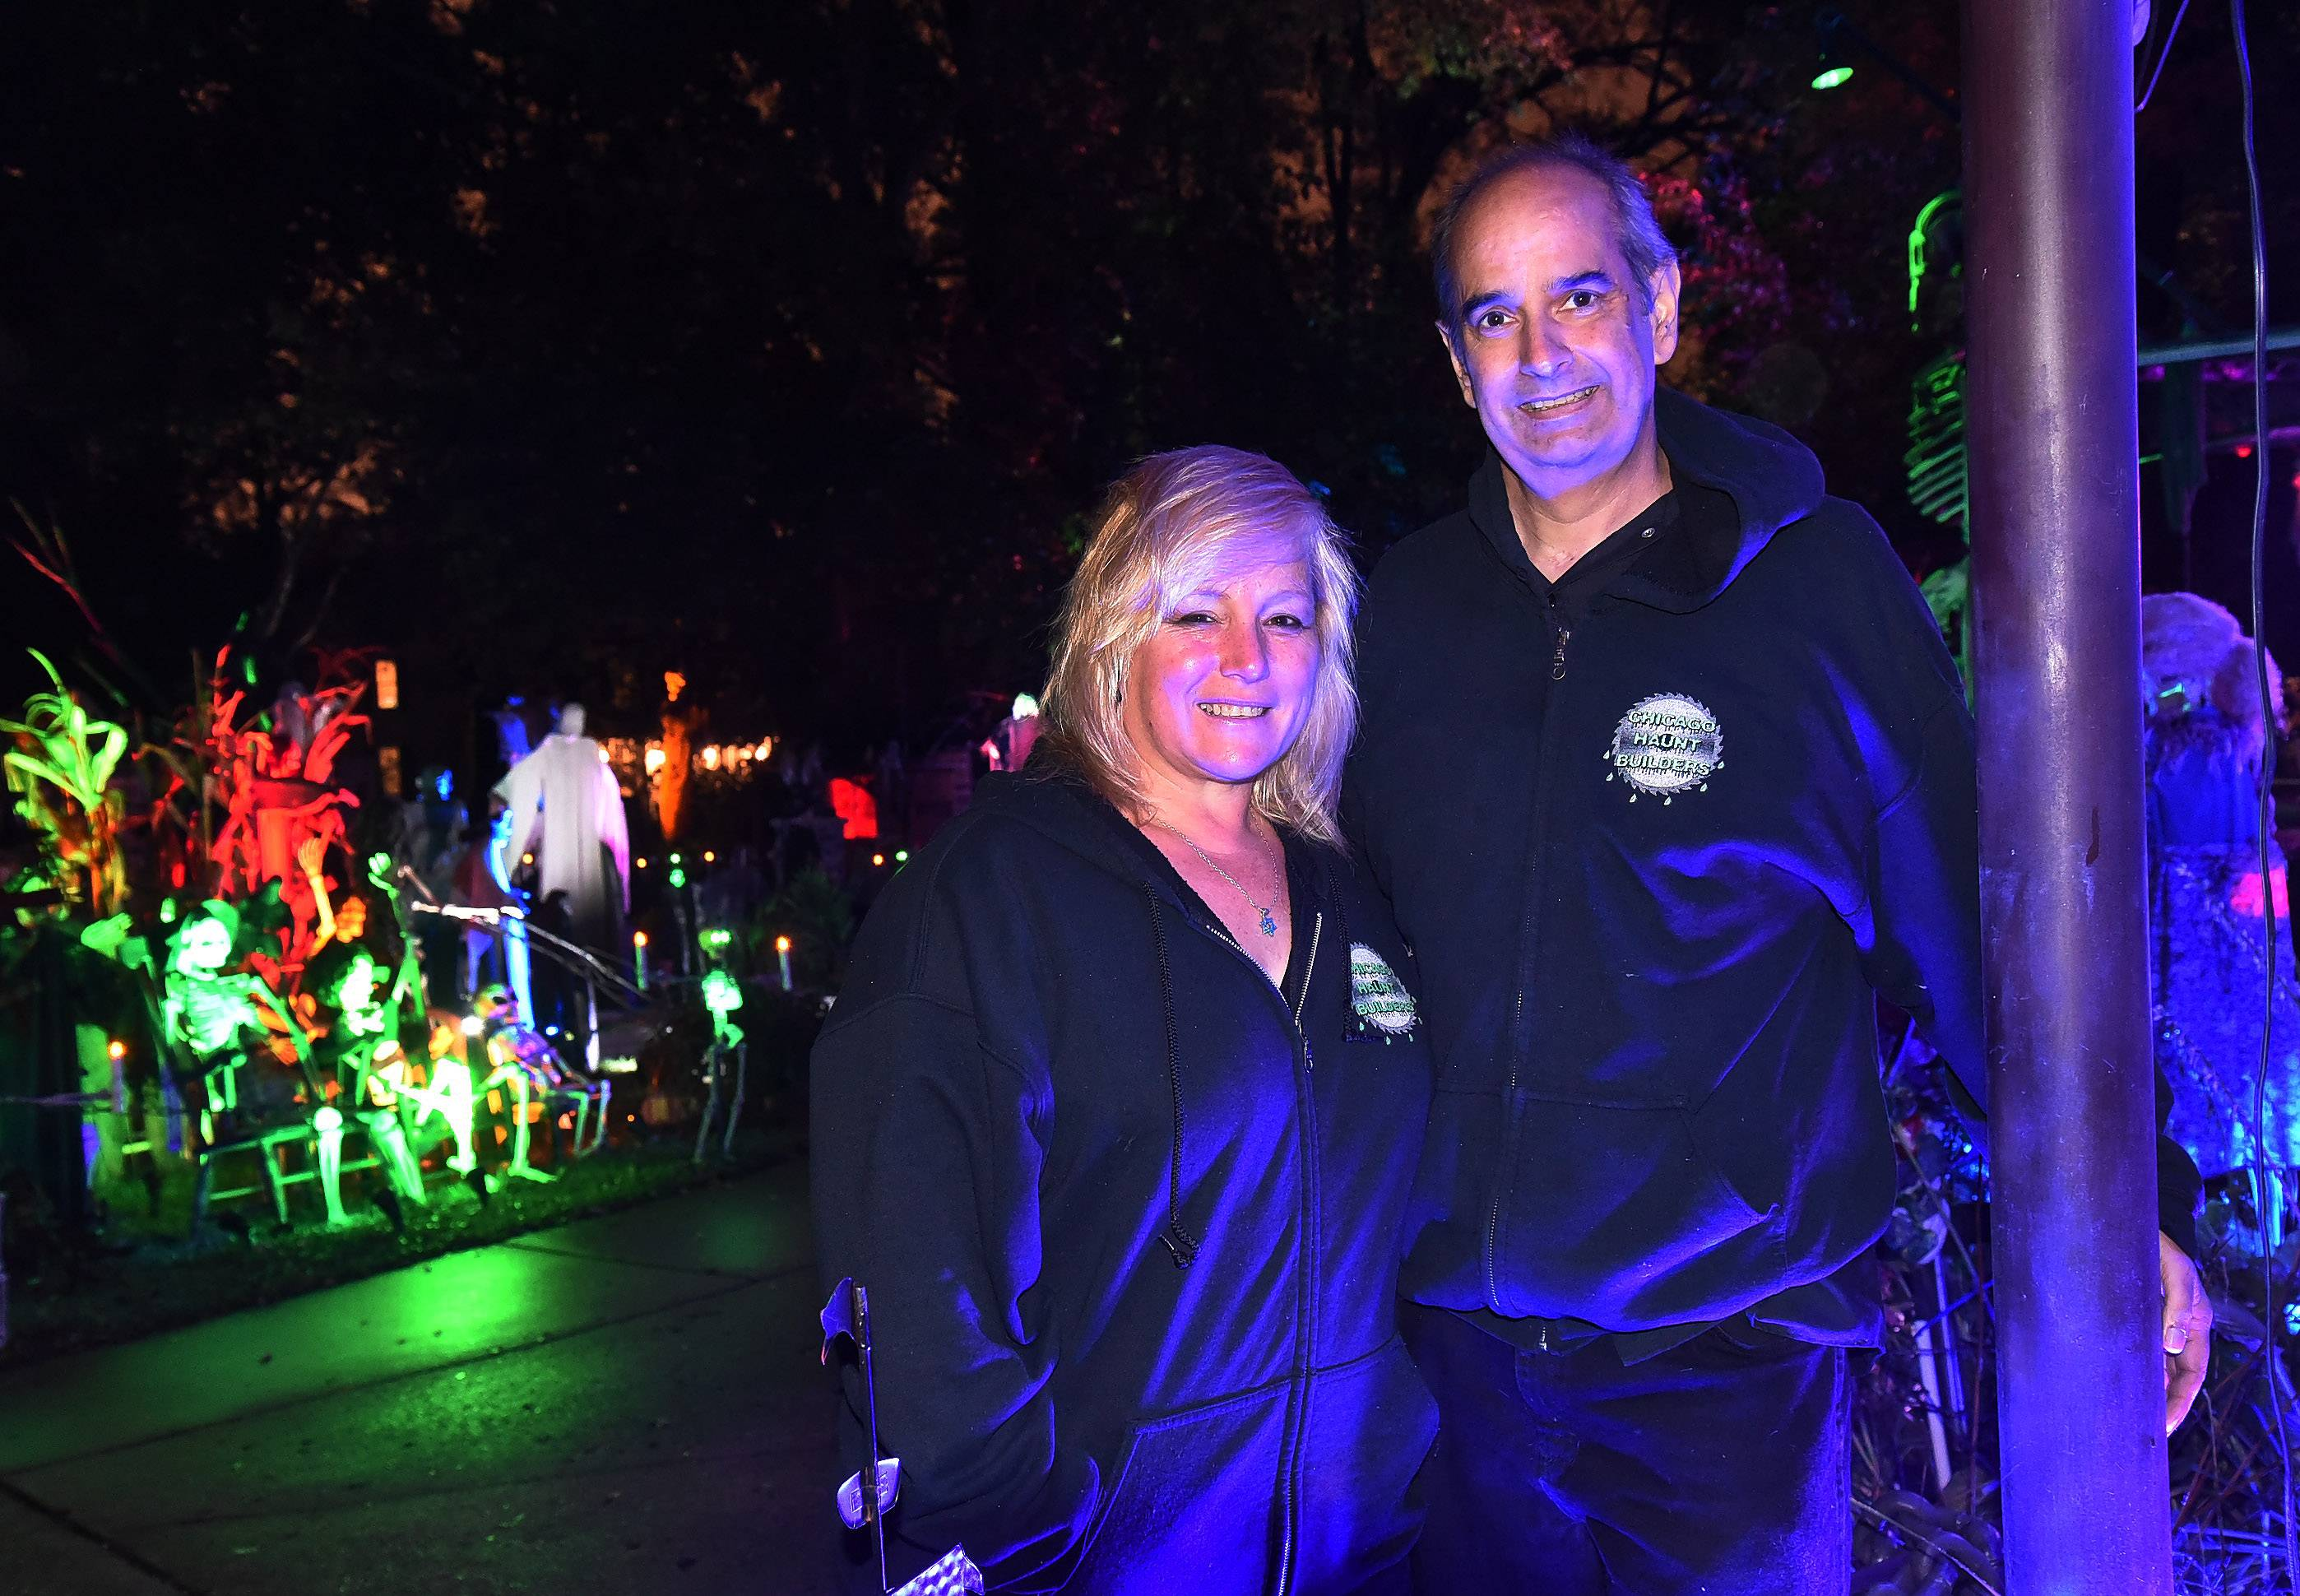 For 17 years, Michael Podlin and TammySue Margalit have turned their Arlington Heights home into a spectacular Halloween display. Podlin's grim pancreatic cancer diagnosis doesn't change their desire to give visitors good, scary memories.